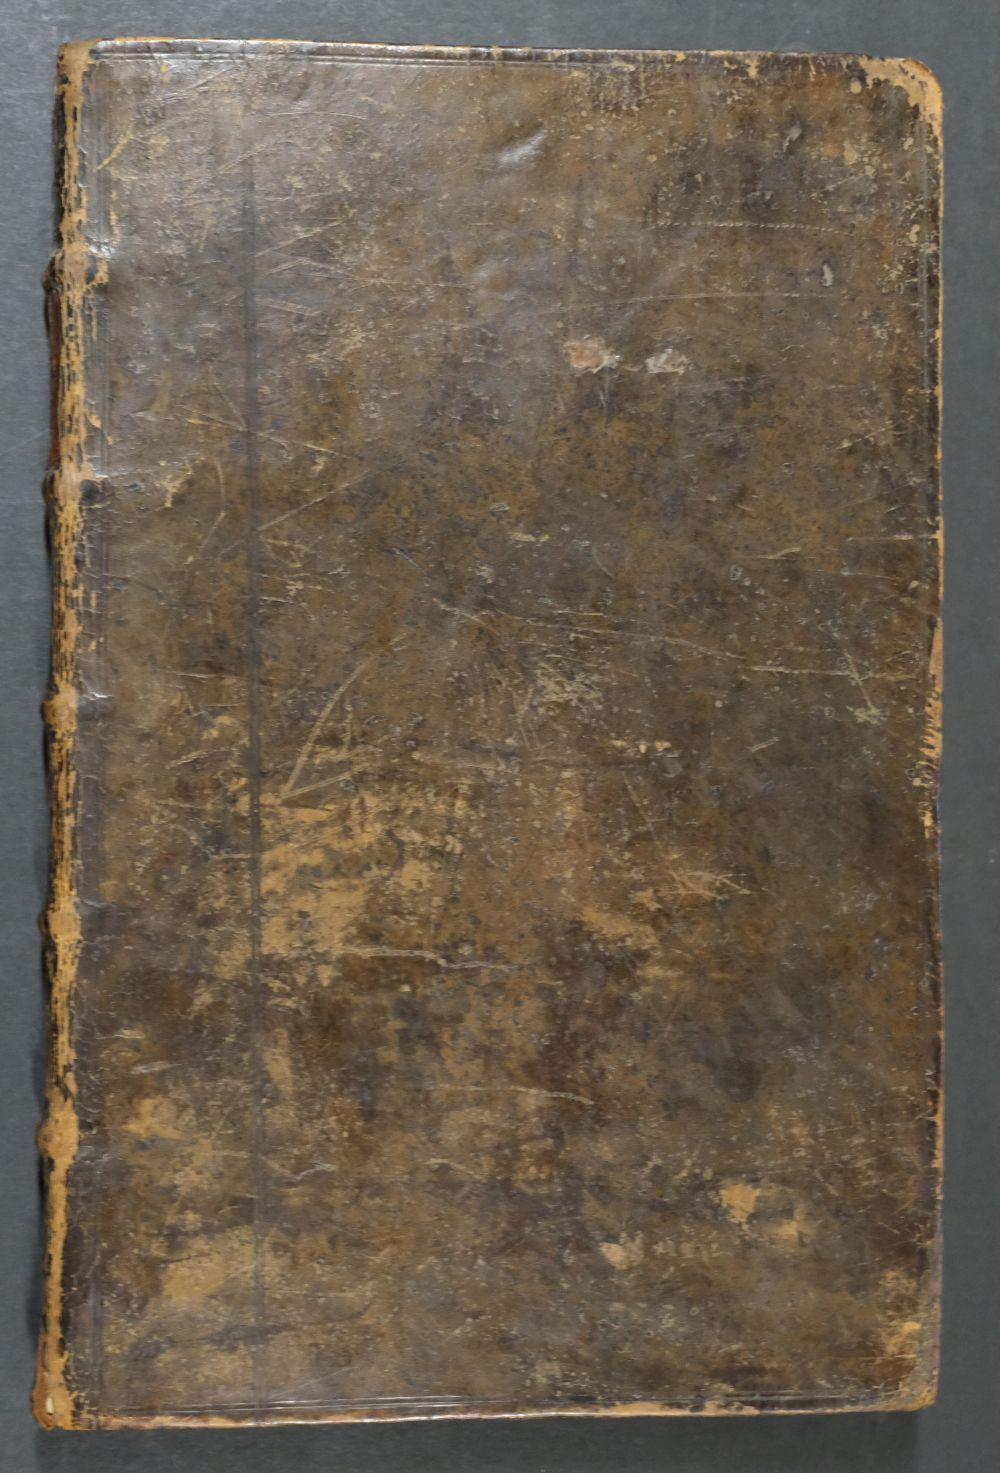 Plot (Robert). The Natural History of Oxfordshire, 1677 - Image 2 of 11